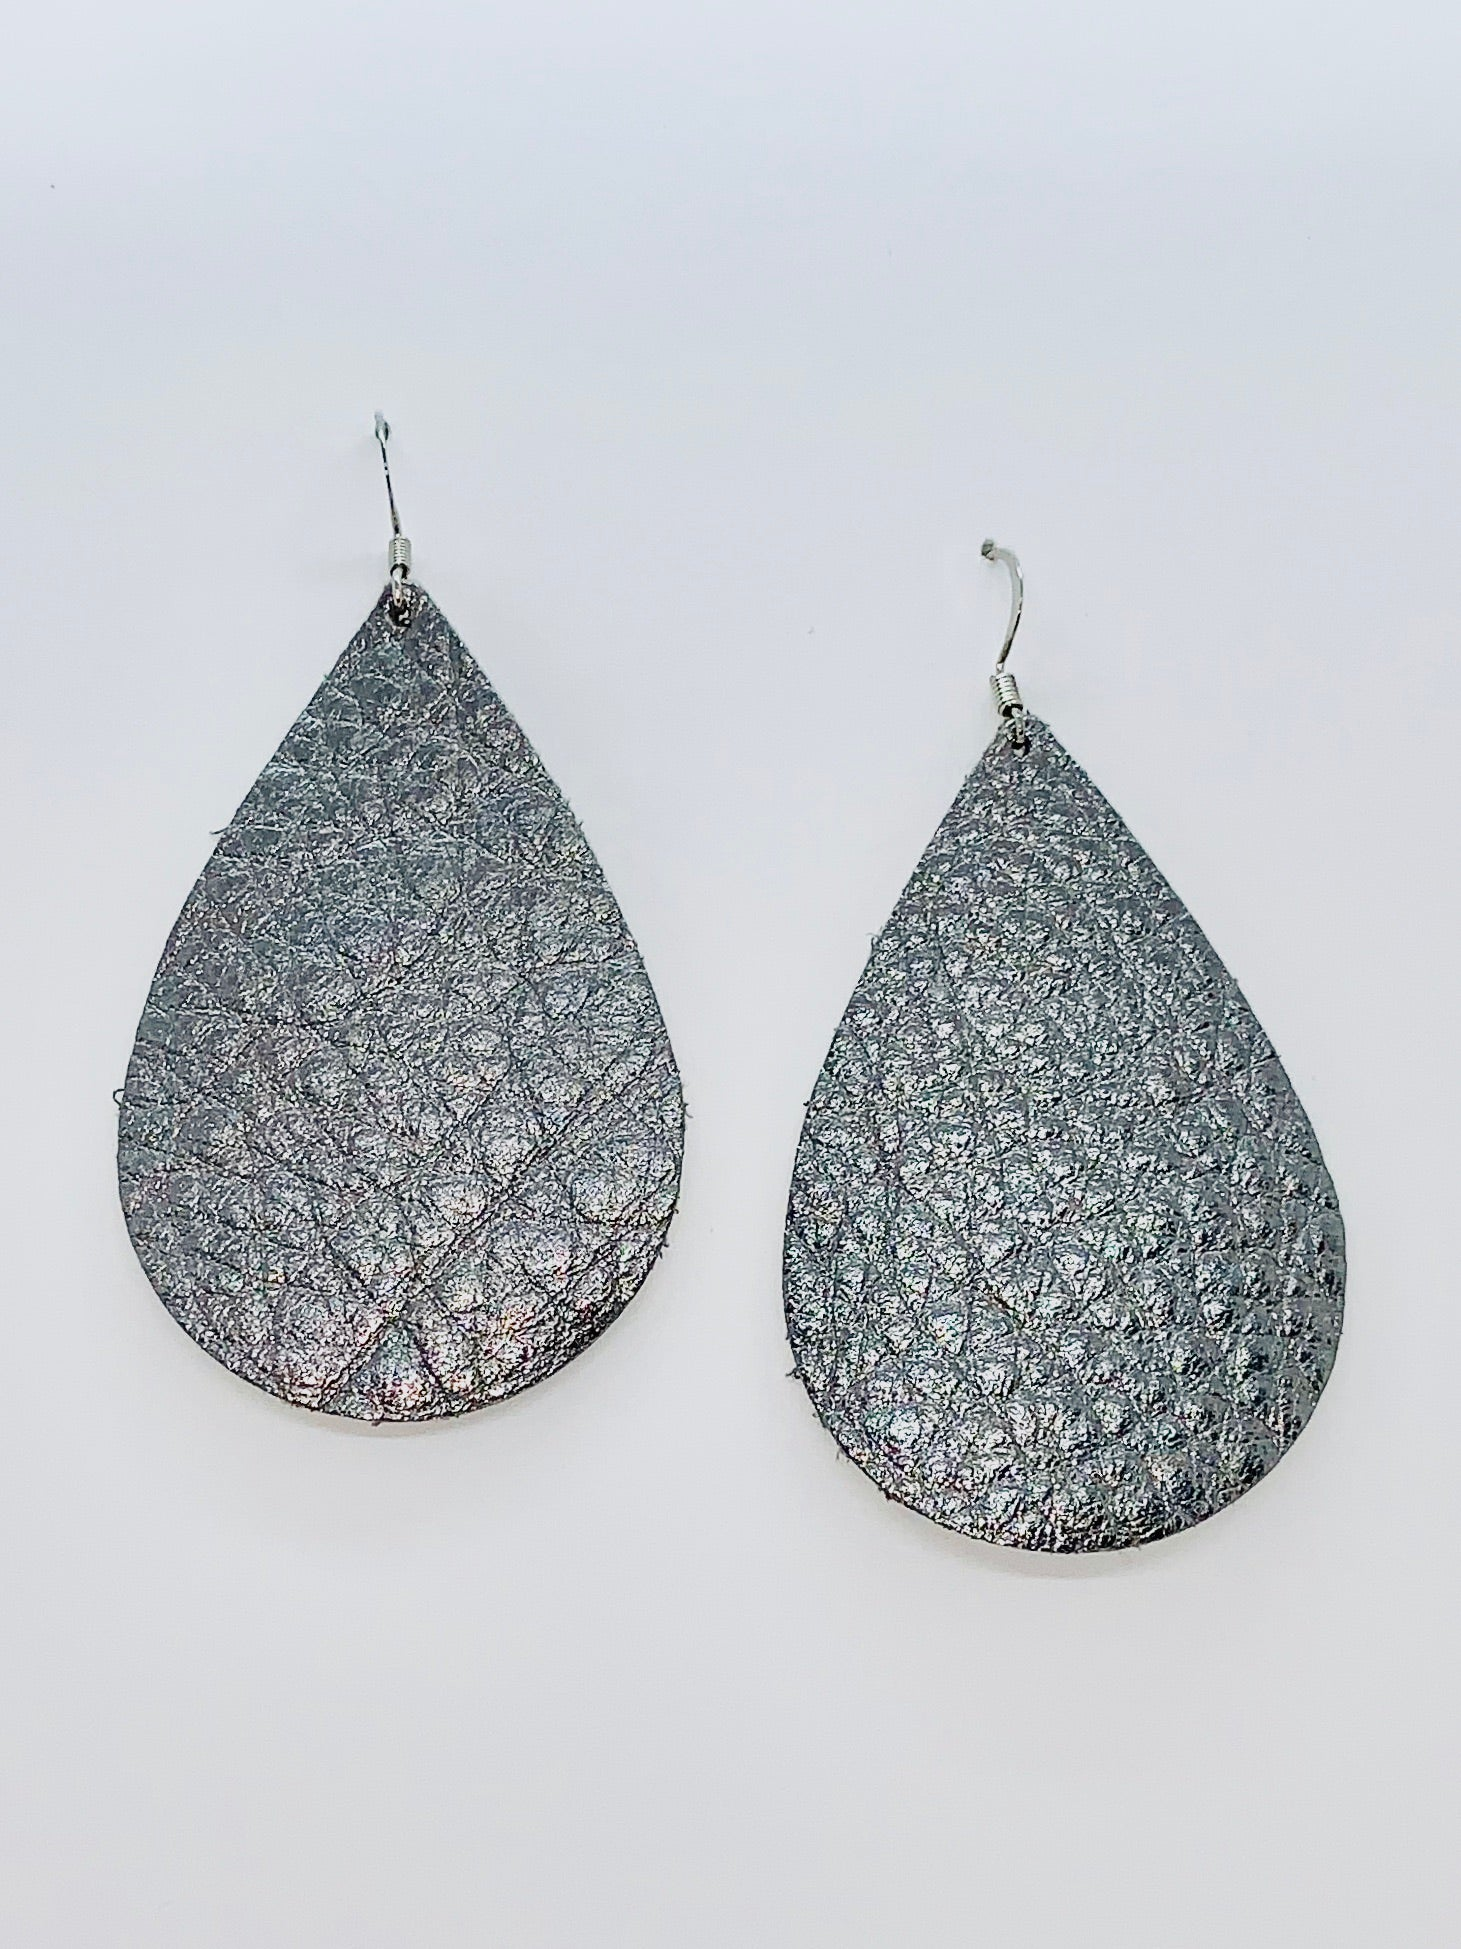 gun-metal-grey-metallic-teardrop-leather-earrings